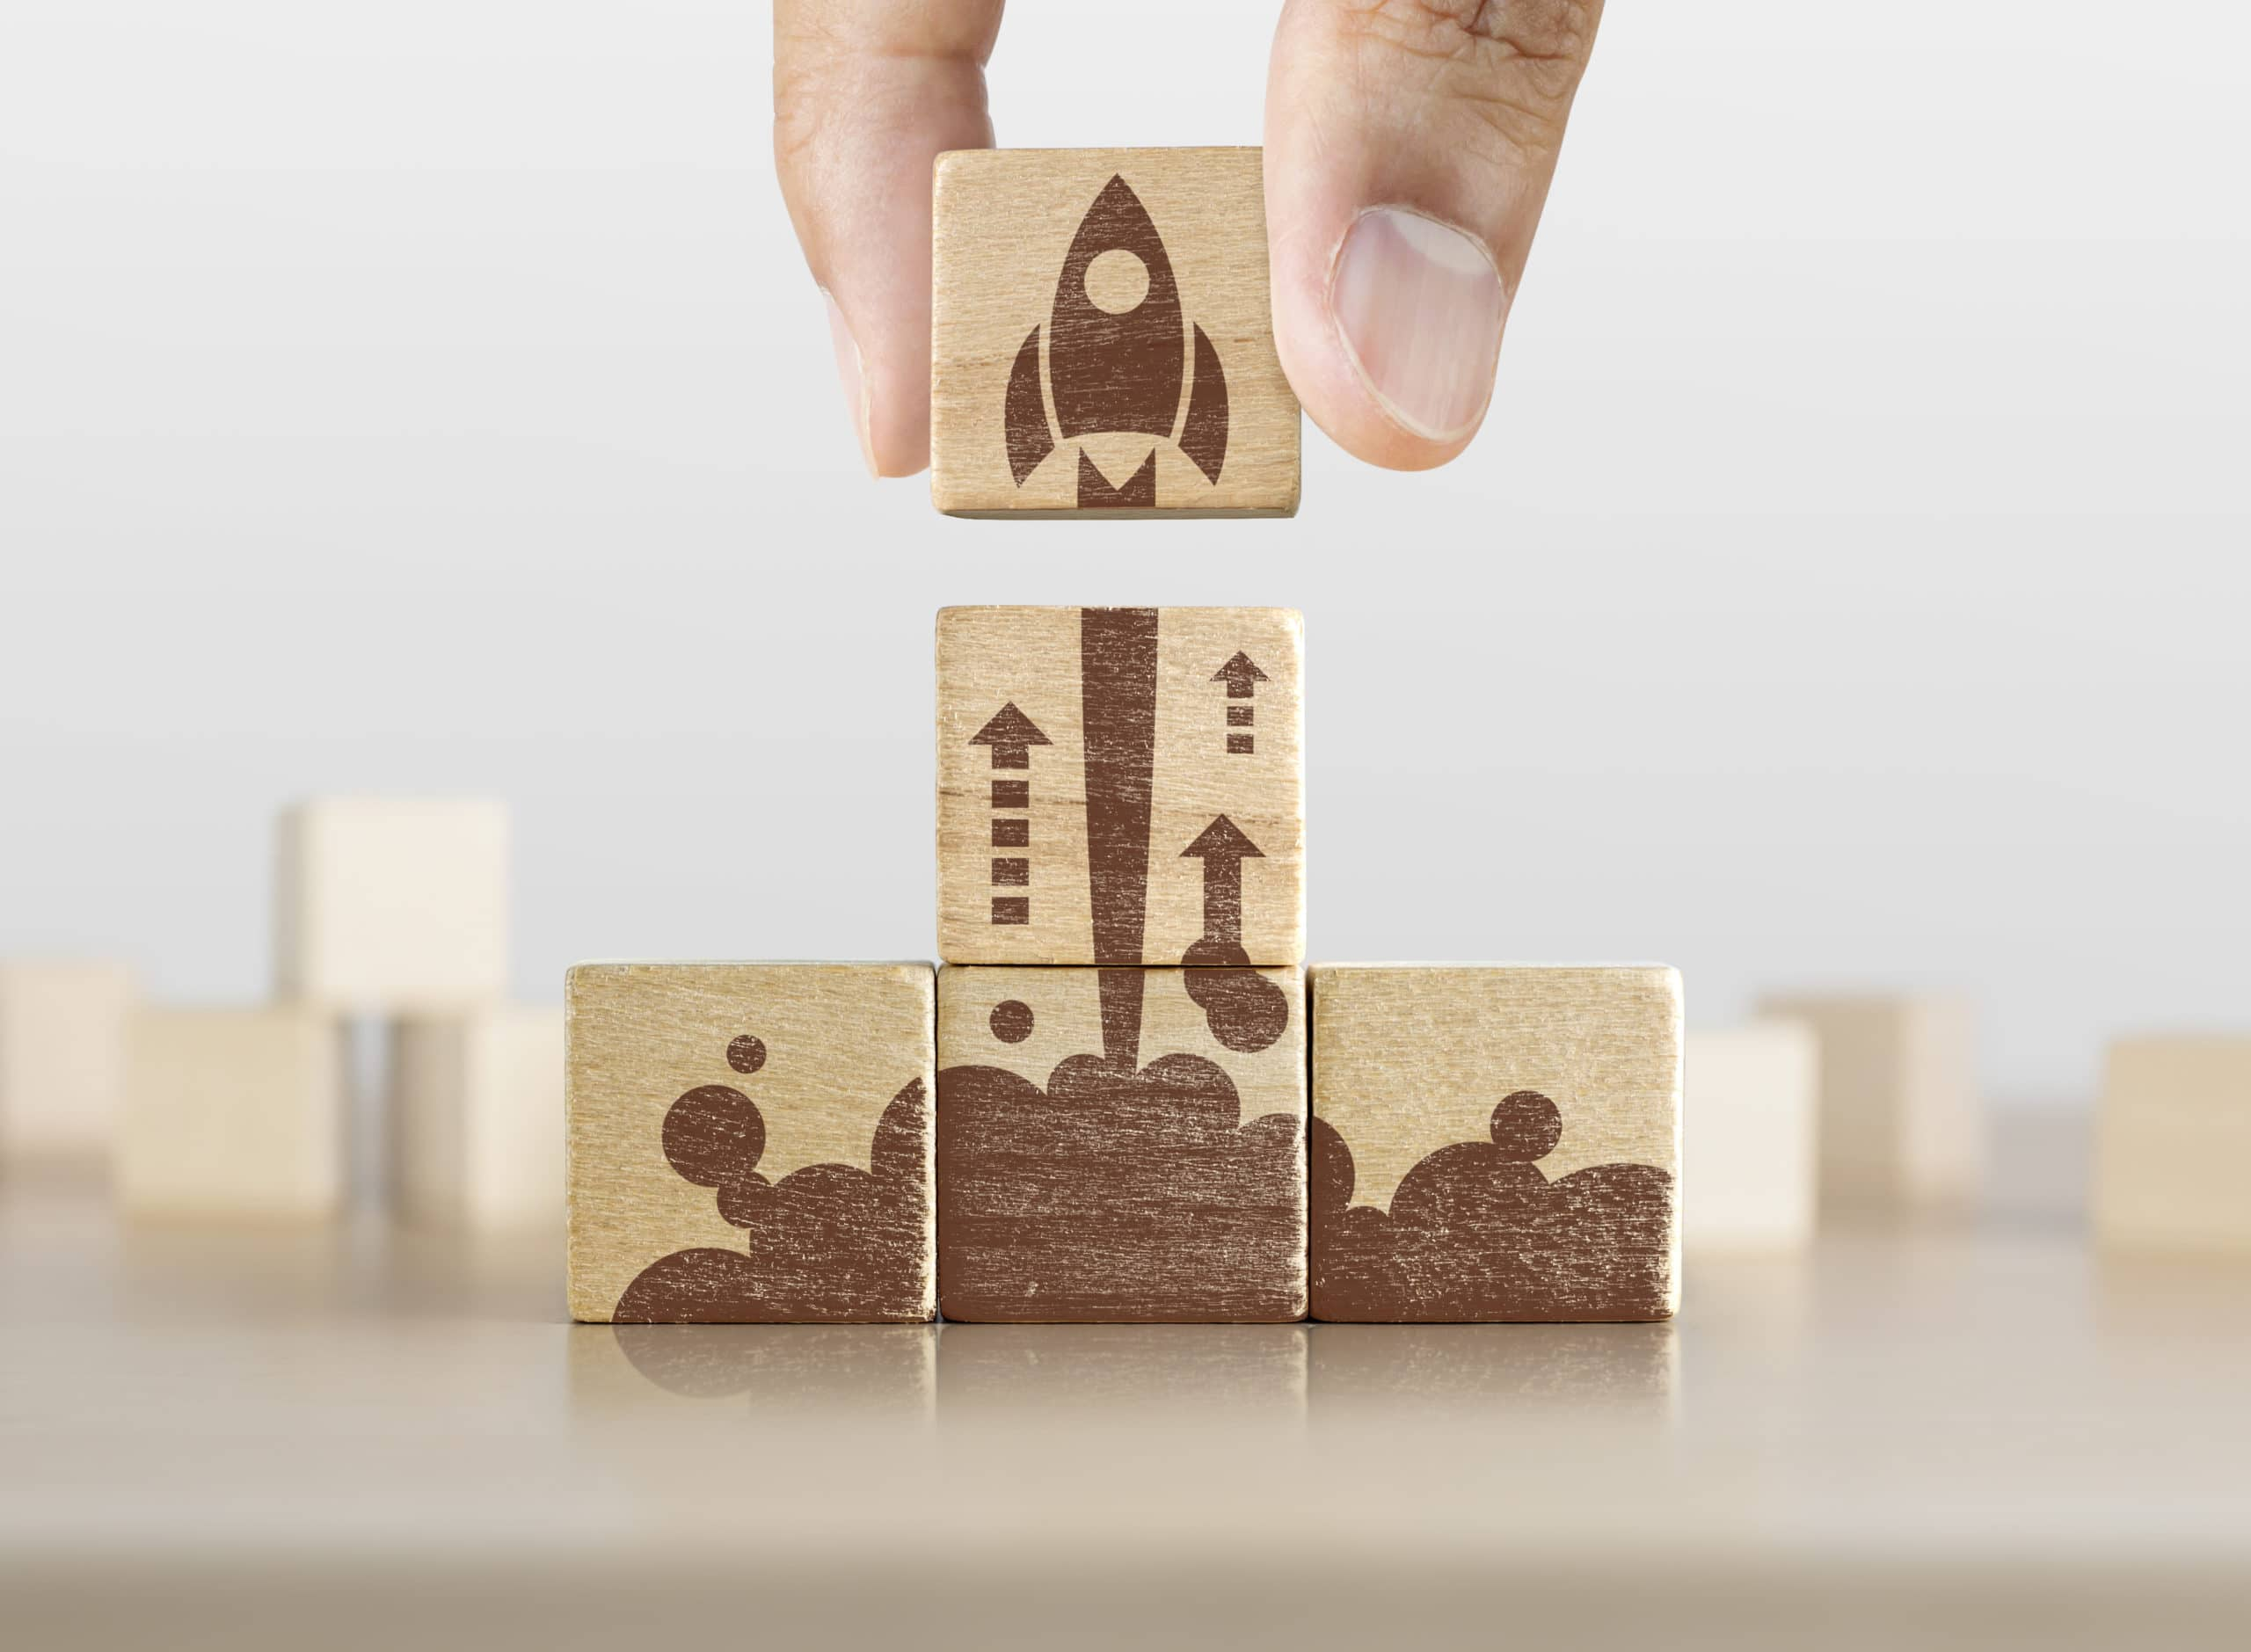 This is an image of building blocks that depict a rocket launching, symbolizing the beginning of a startup.